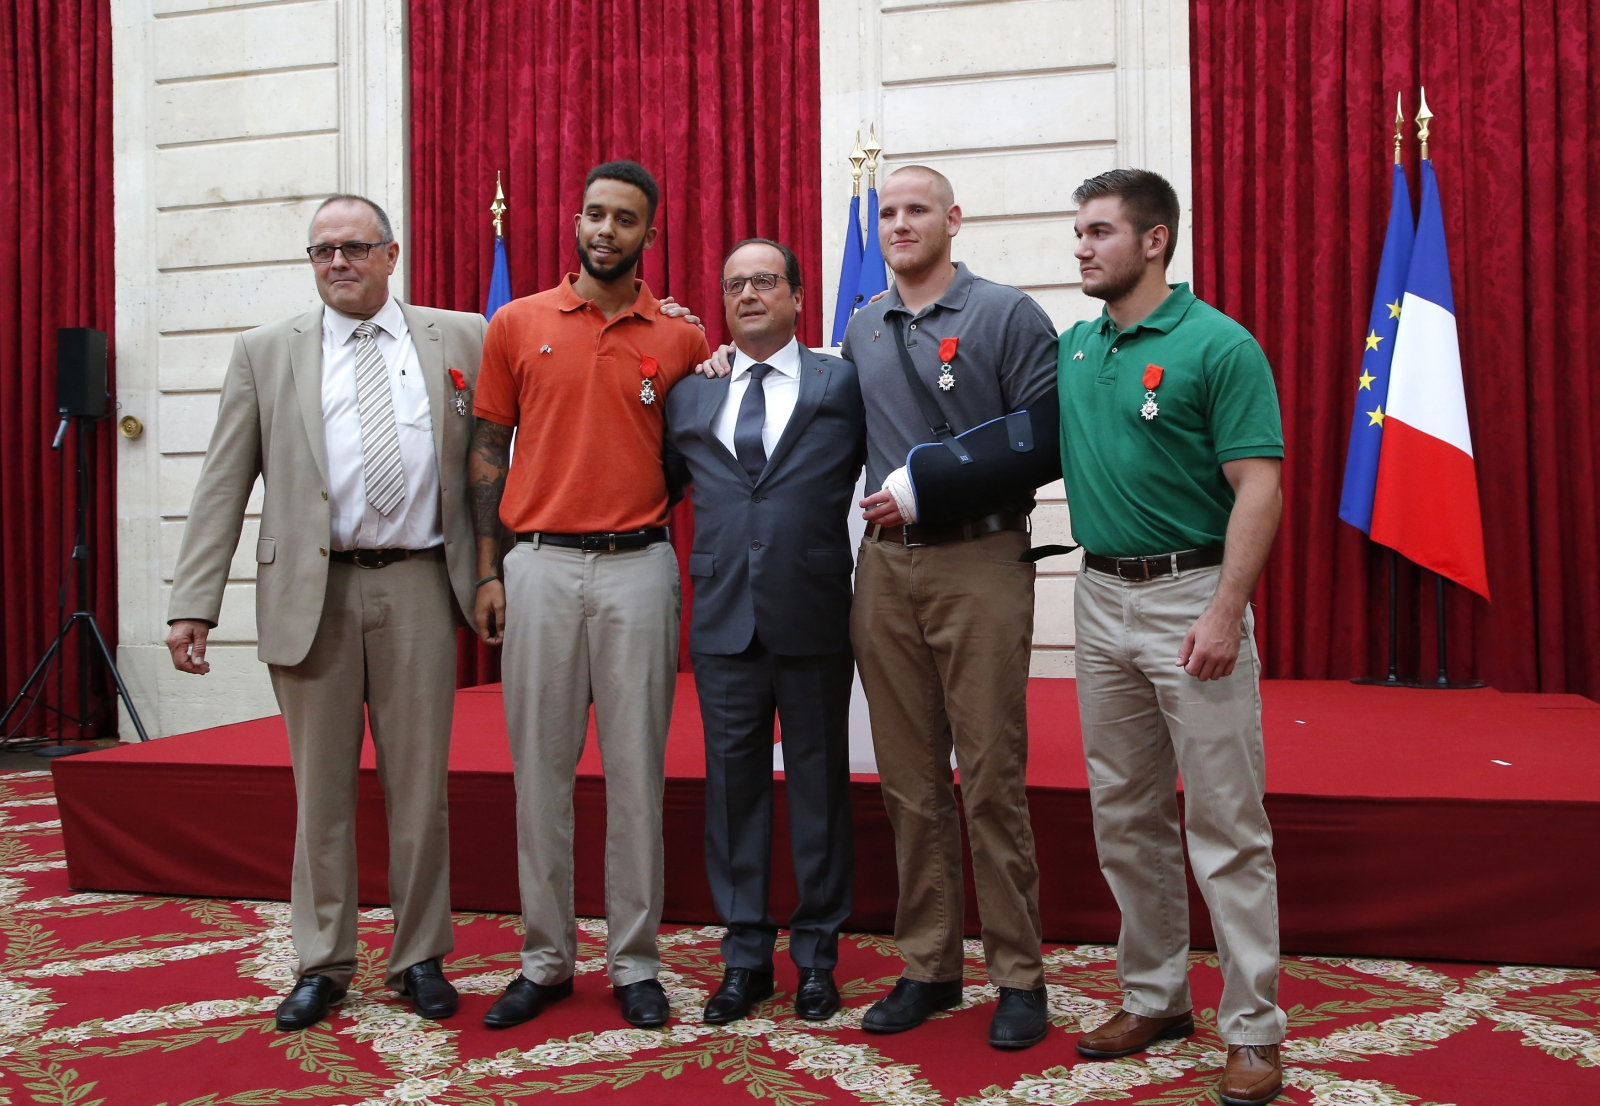 France train attack heroes